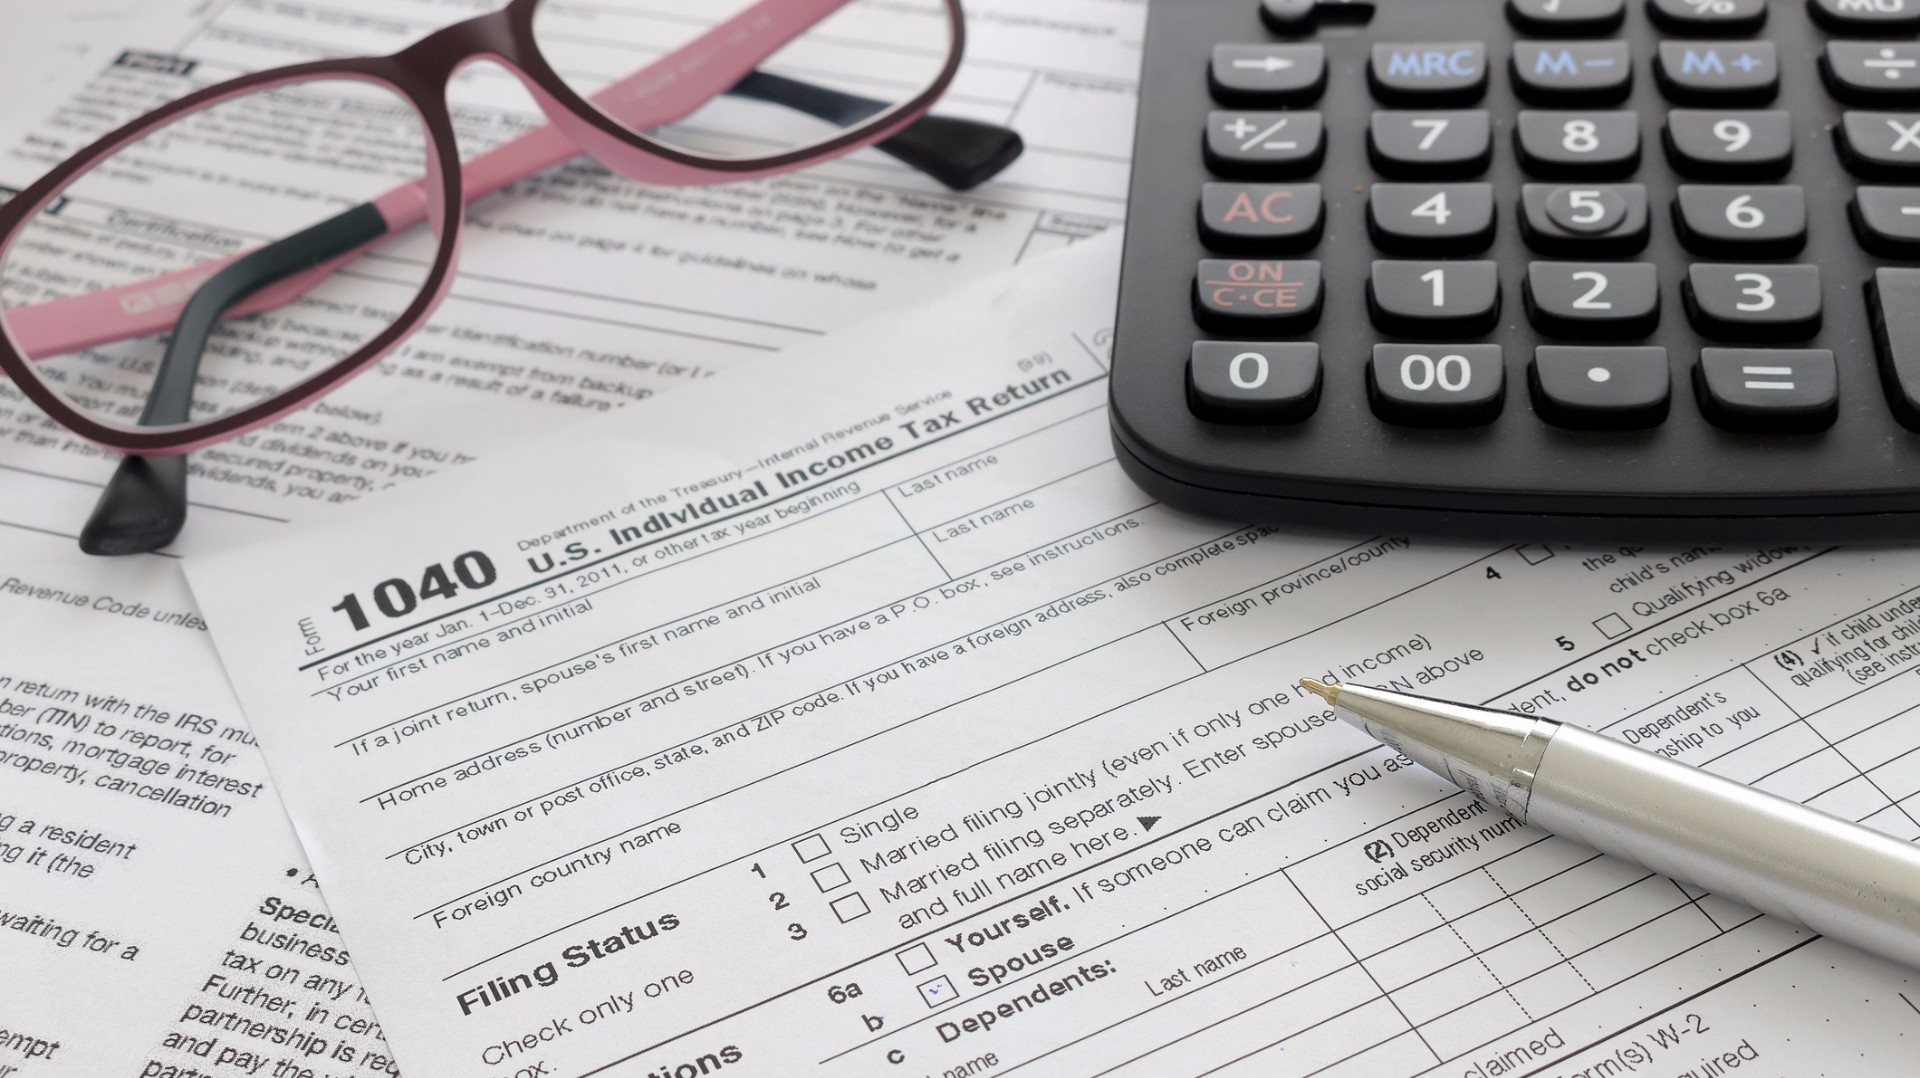 Where's your tax refund? Some face more delays | WZZM13.com